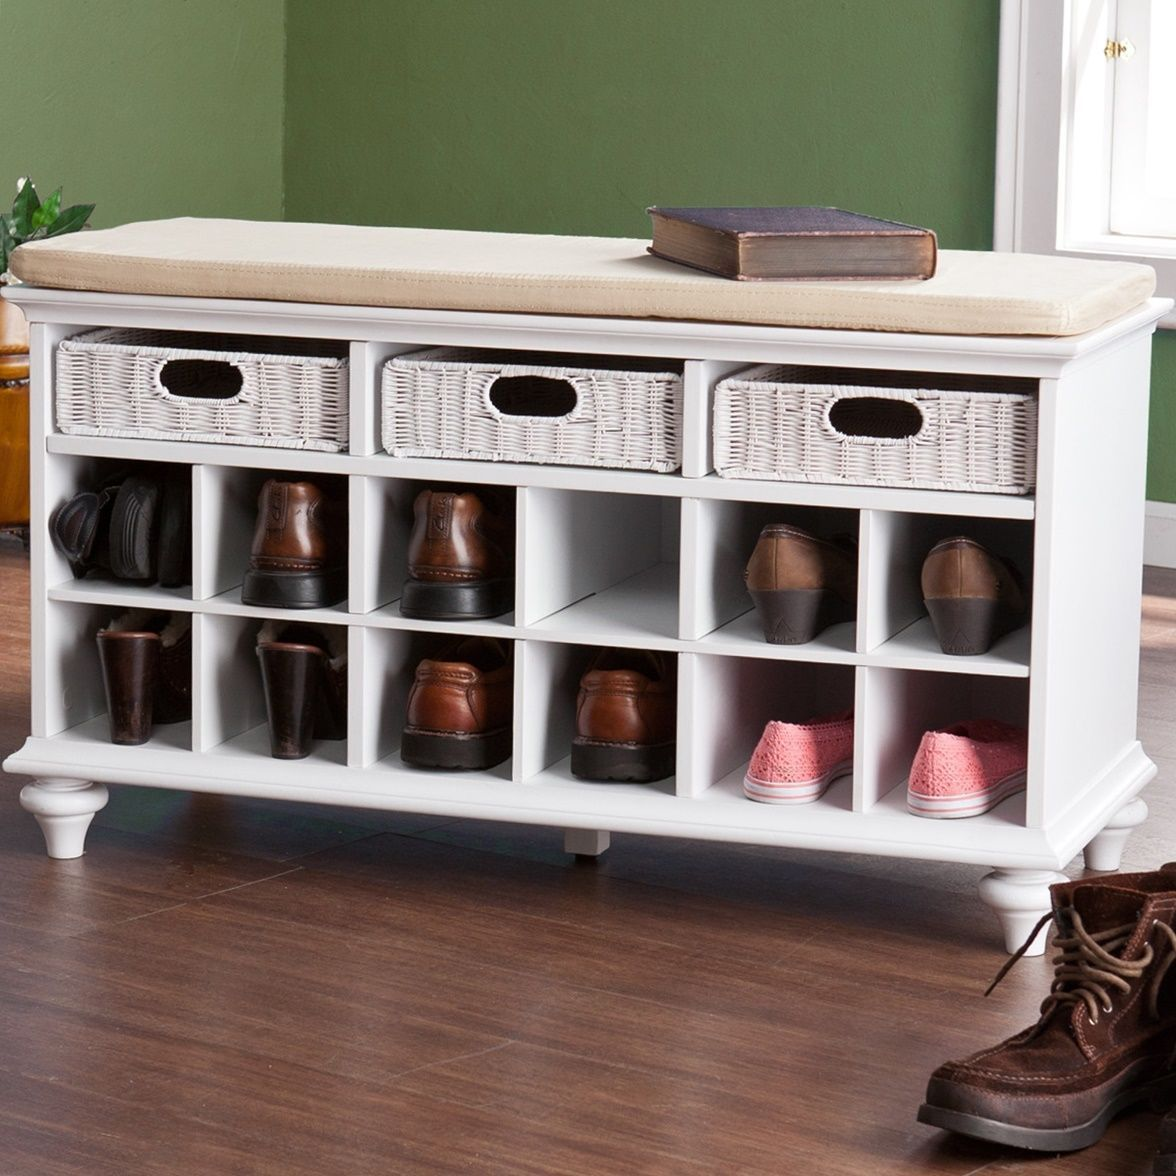 Foyer Storage Drawers : Shoe storage bench rattan drawers entryway corridor